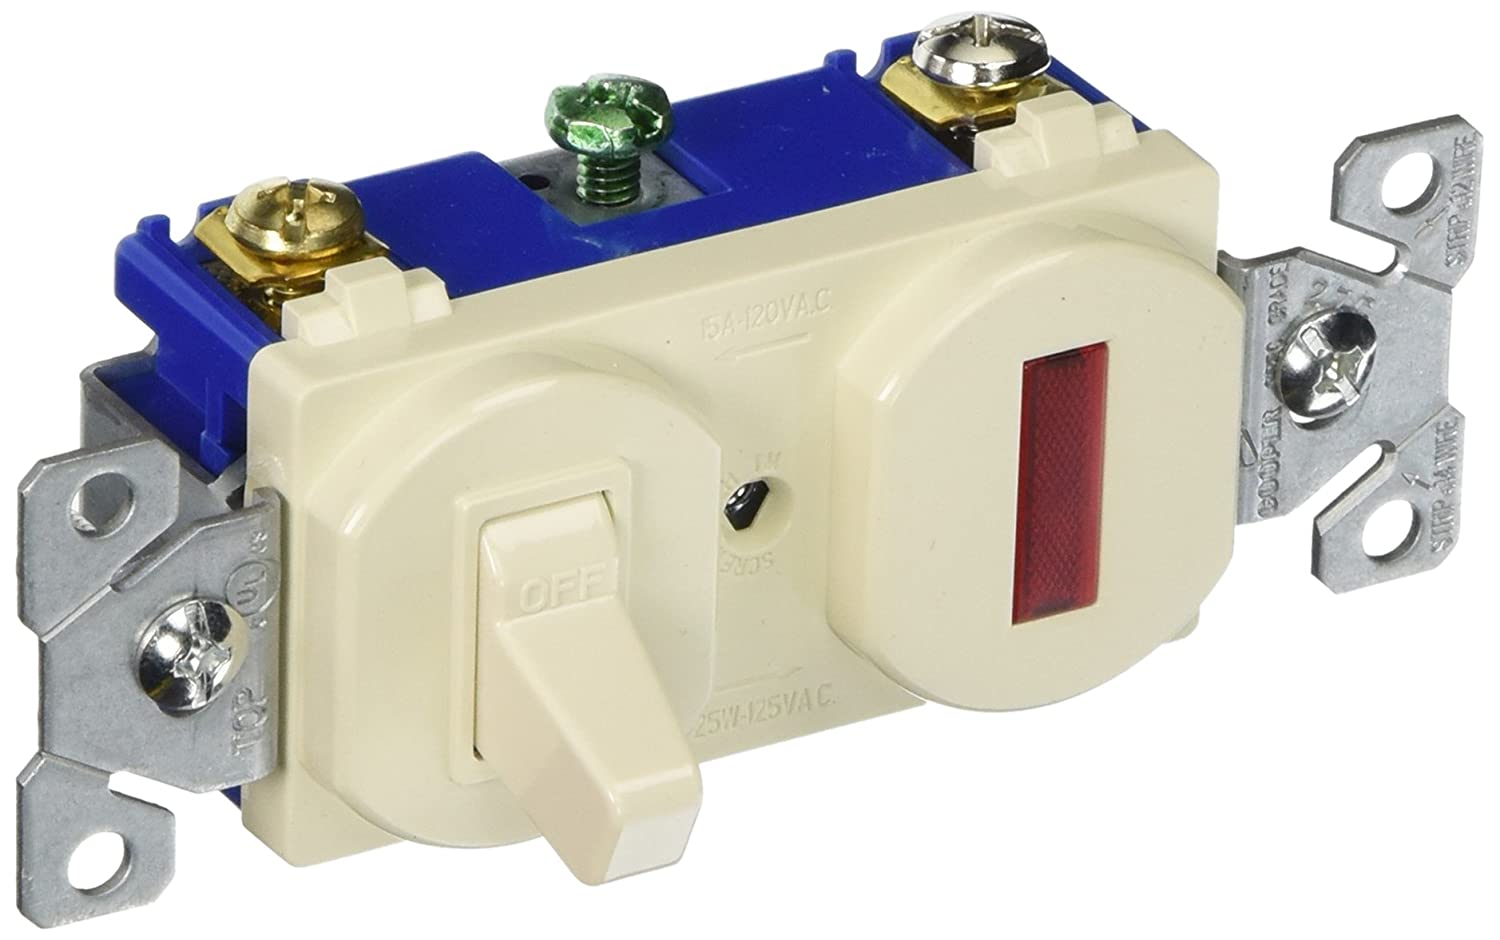 Eaton 277la Sp 15 Amp Single Pole Combination Toggle Switch And Commercial Pilot Light Almond Wall Switches